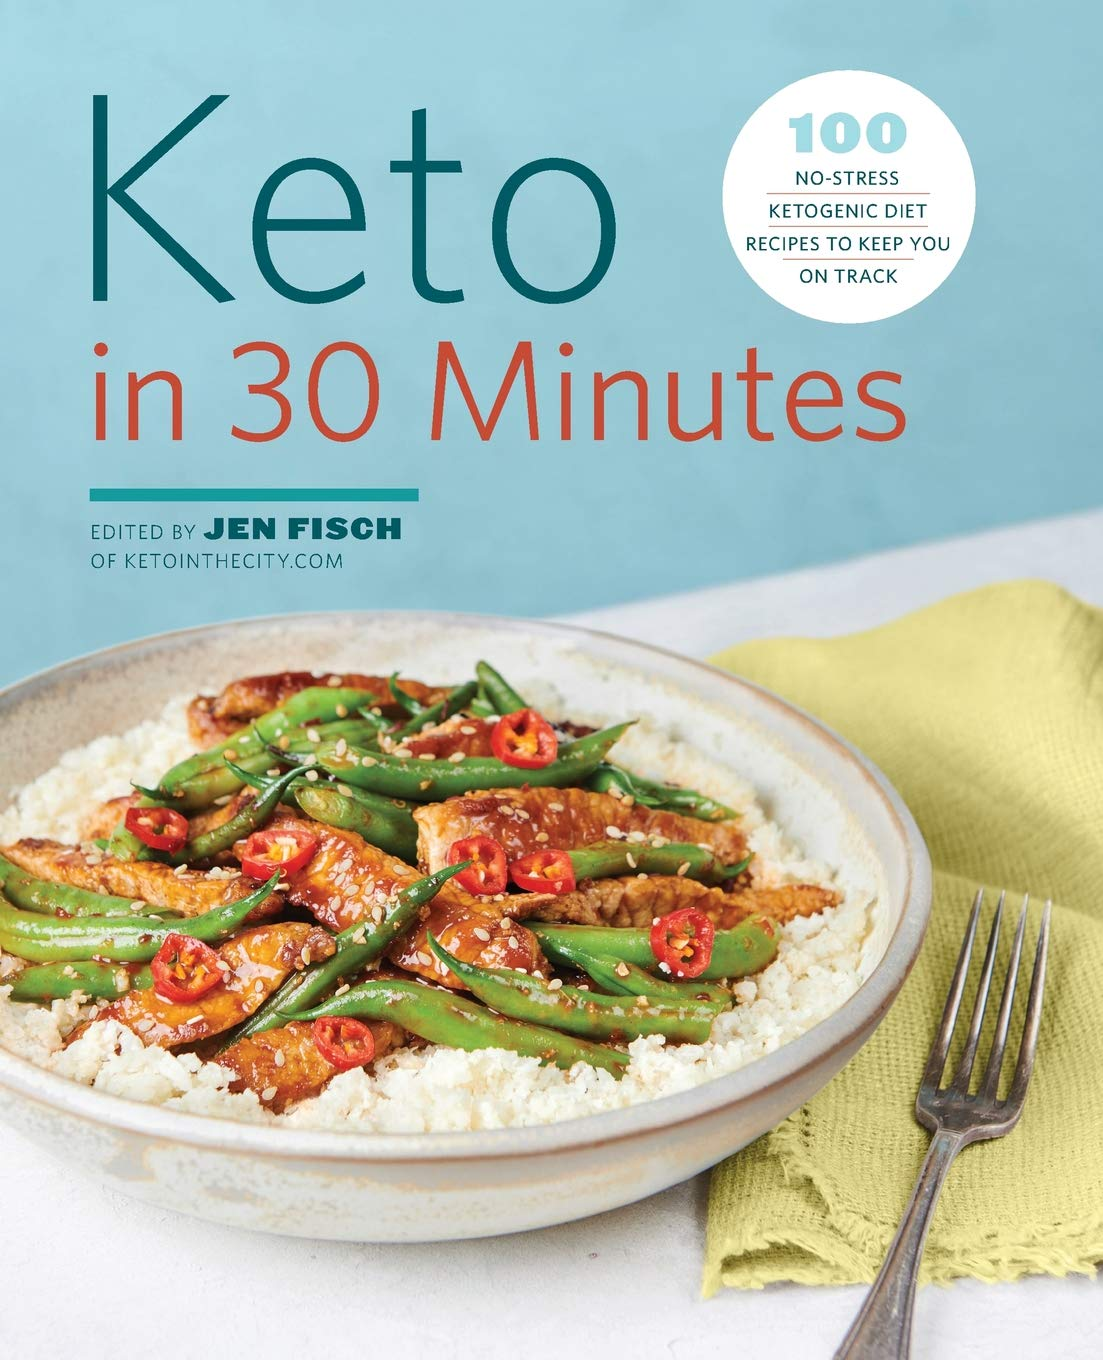 Keto In 30 Minutes 100 No Stress Ketogenic Diet Recipes To Keep You On Track Fisch Jen 9781641524629 Amazon Com Books